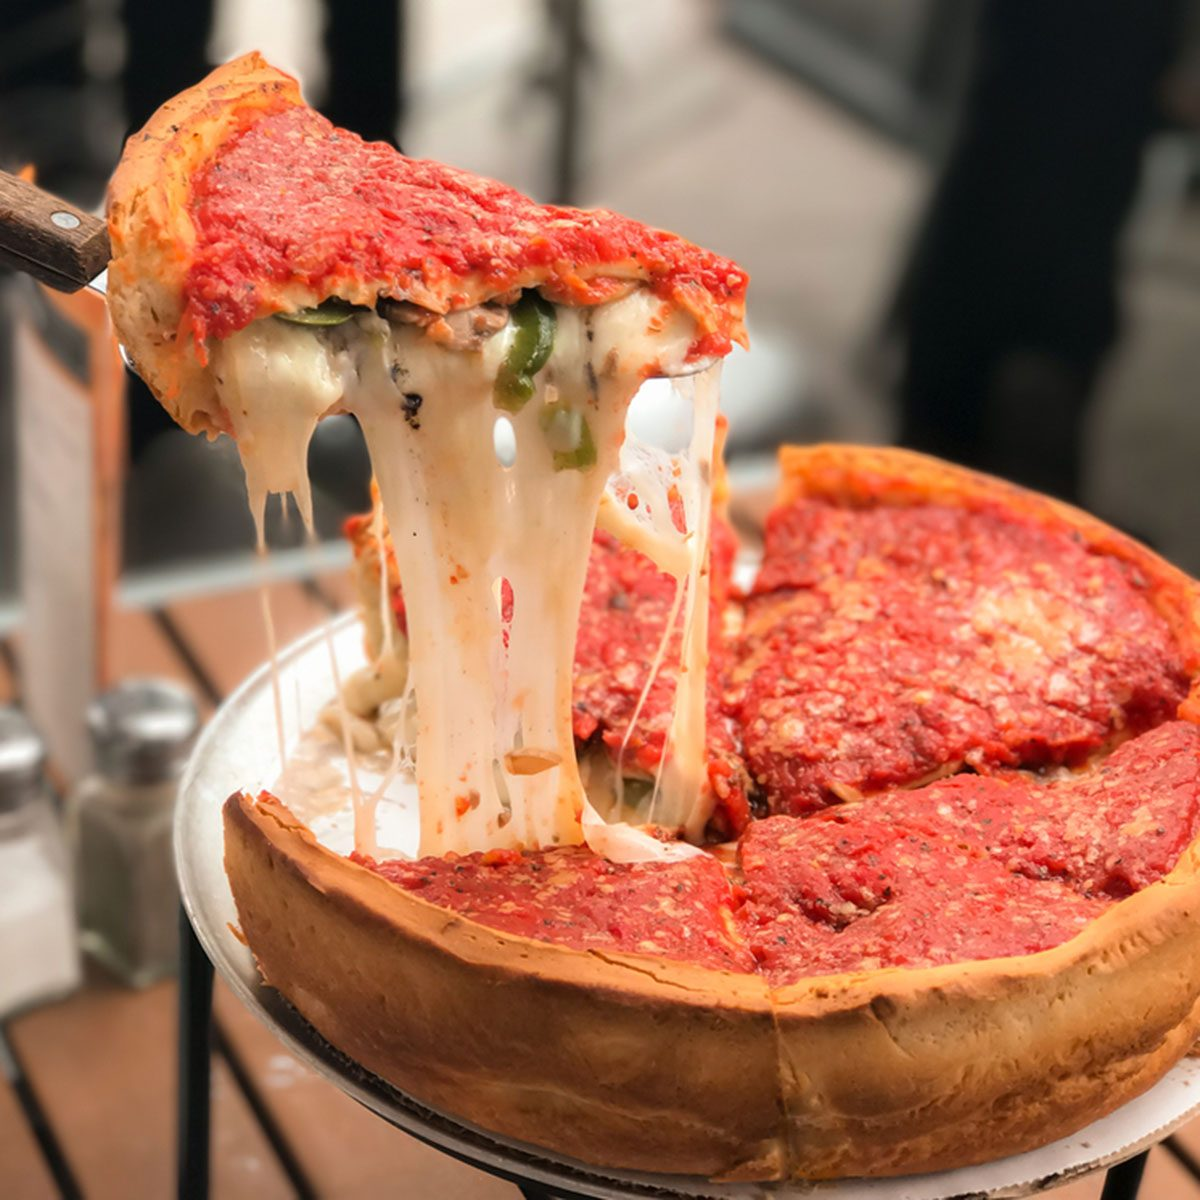 Cheese pizza, Chicago style deep dish italian cheese pizza with tomato sauce.